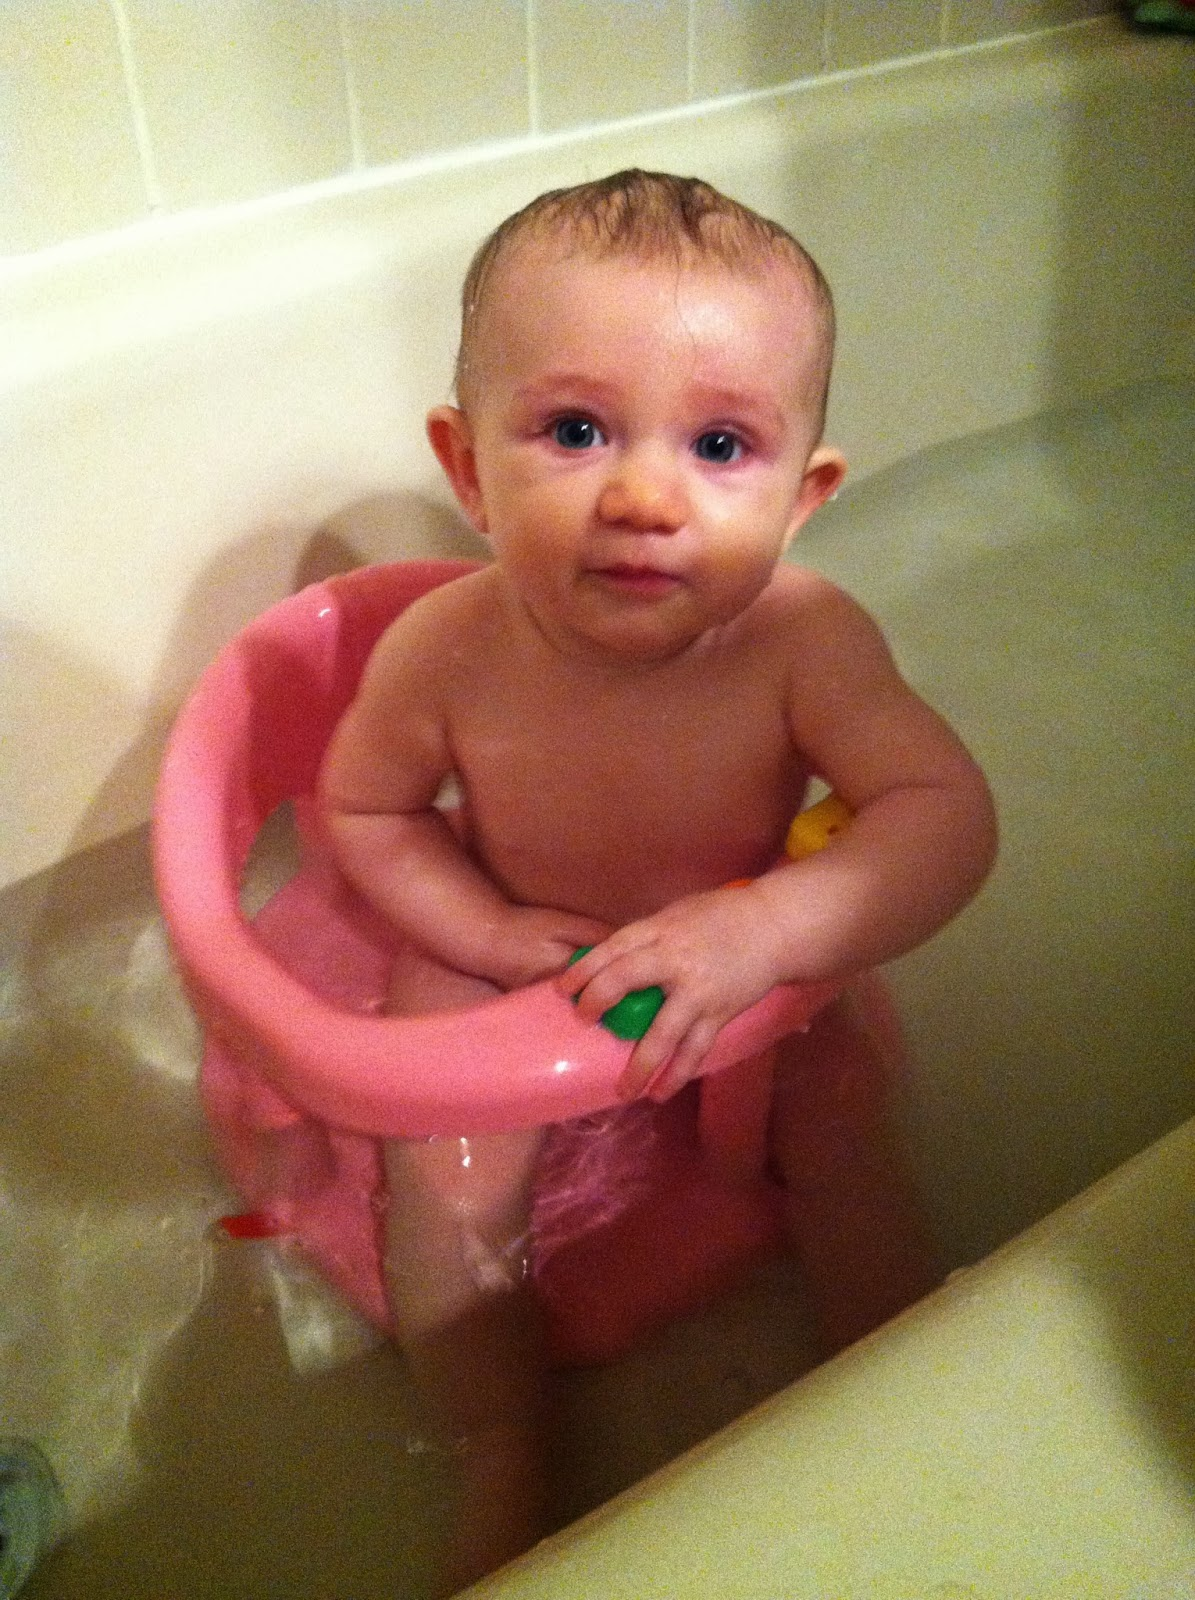 Fancy Baby Bath 6 Months Ensign - Luxurious Bathtub Ideas and ...